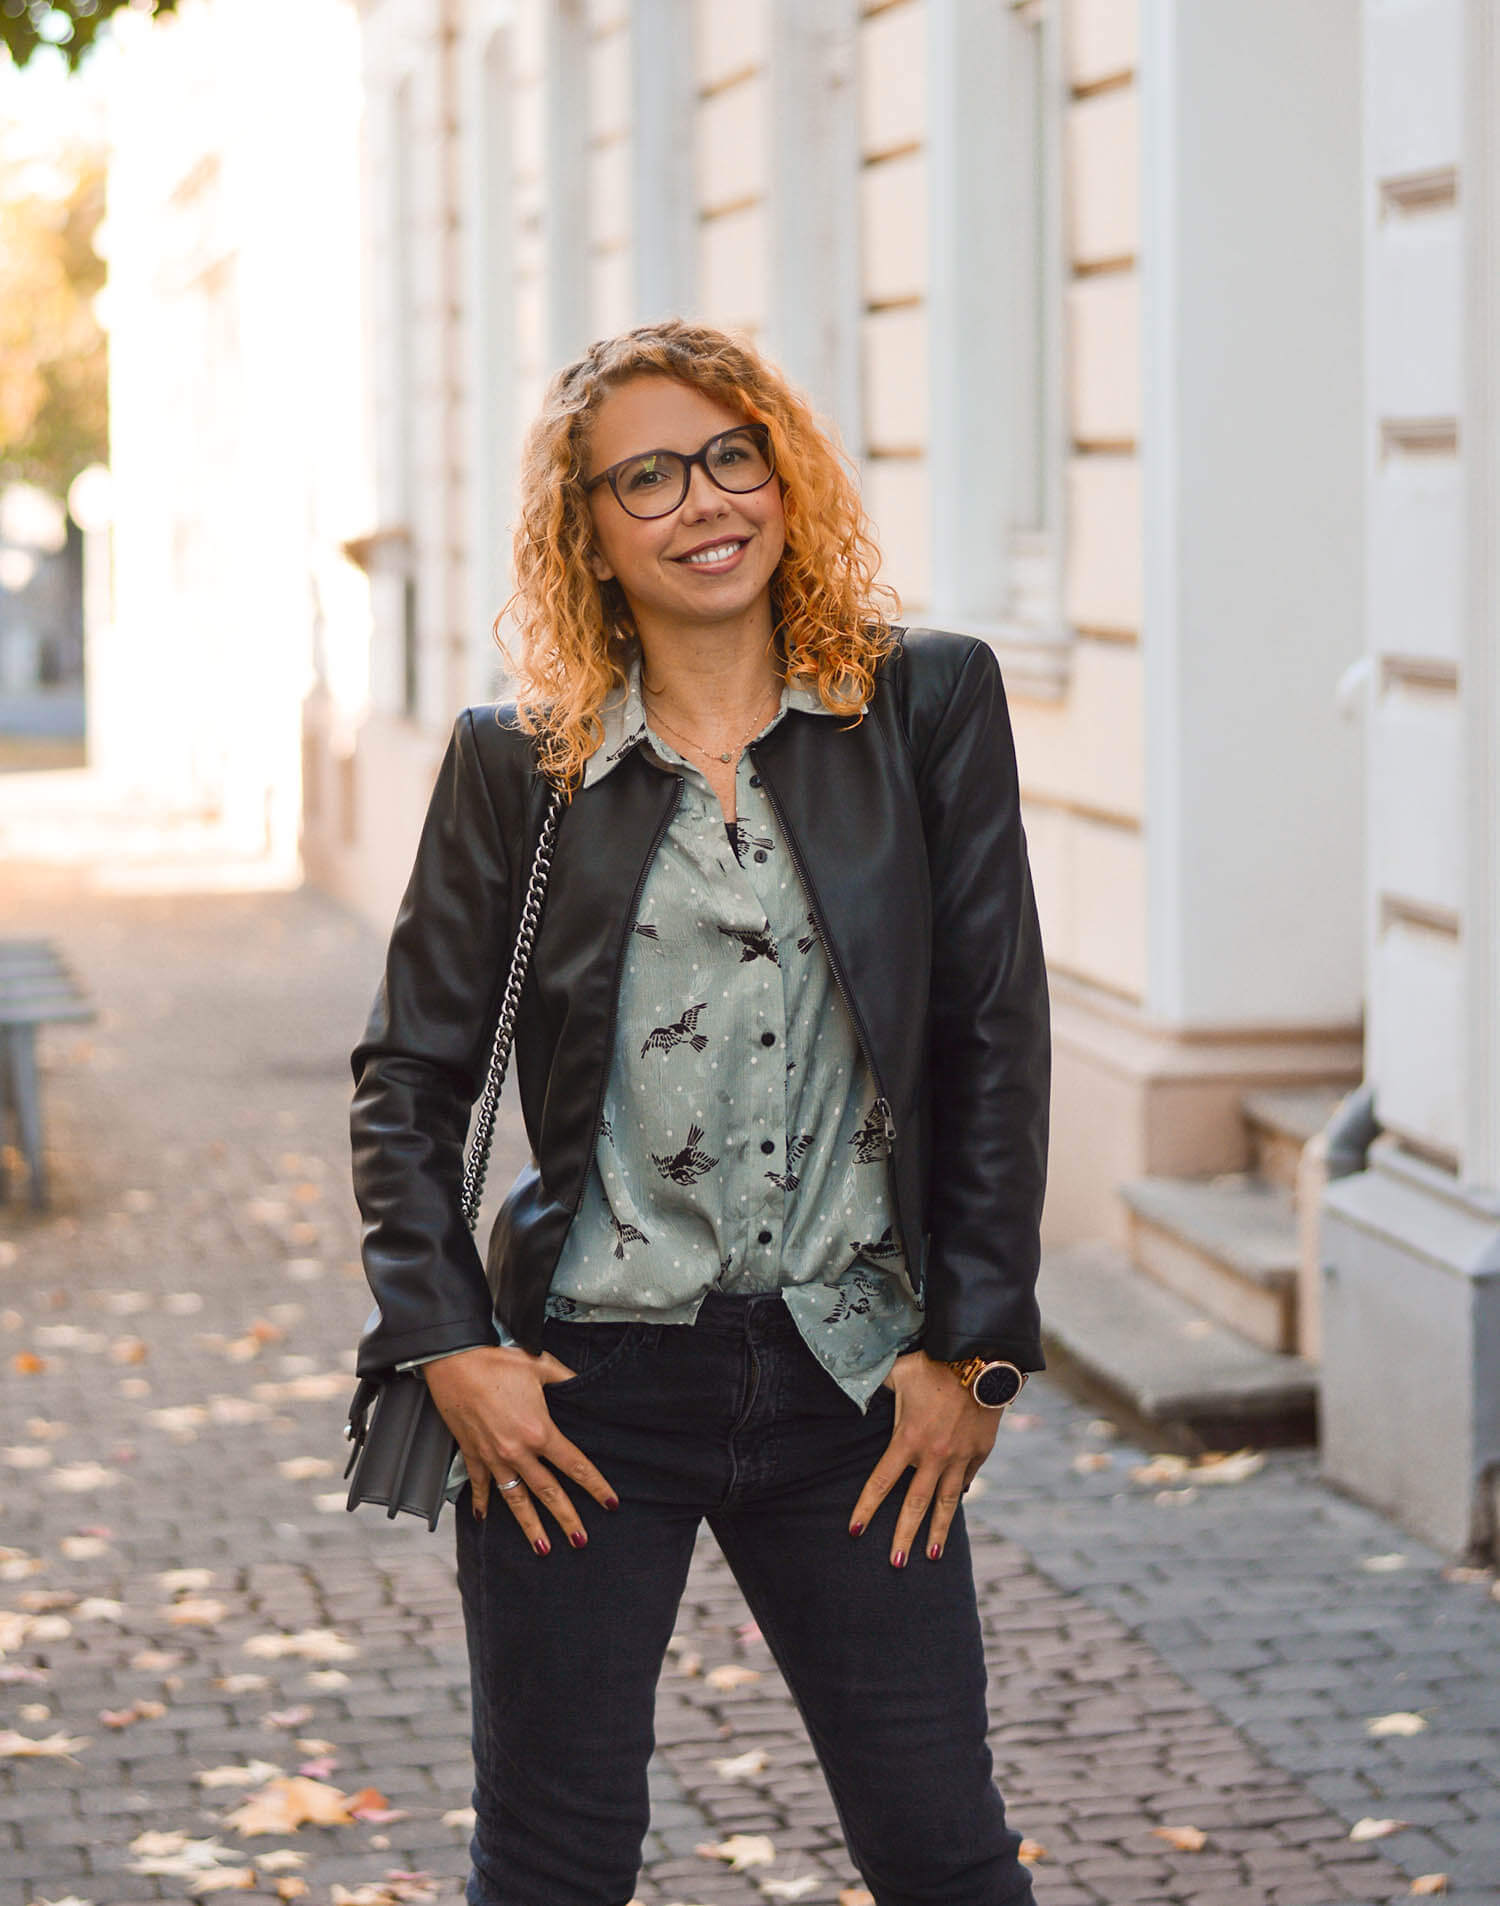 Leather-Jacket-Weather-Zara-Blouse-Rivet-Denim-Fall-Outfit-kationette-fashionblogger-germany